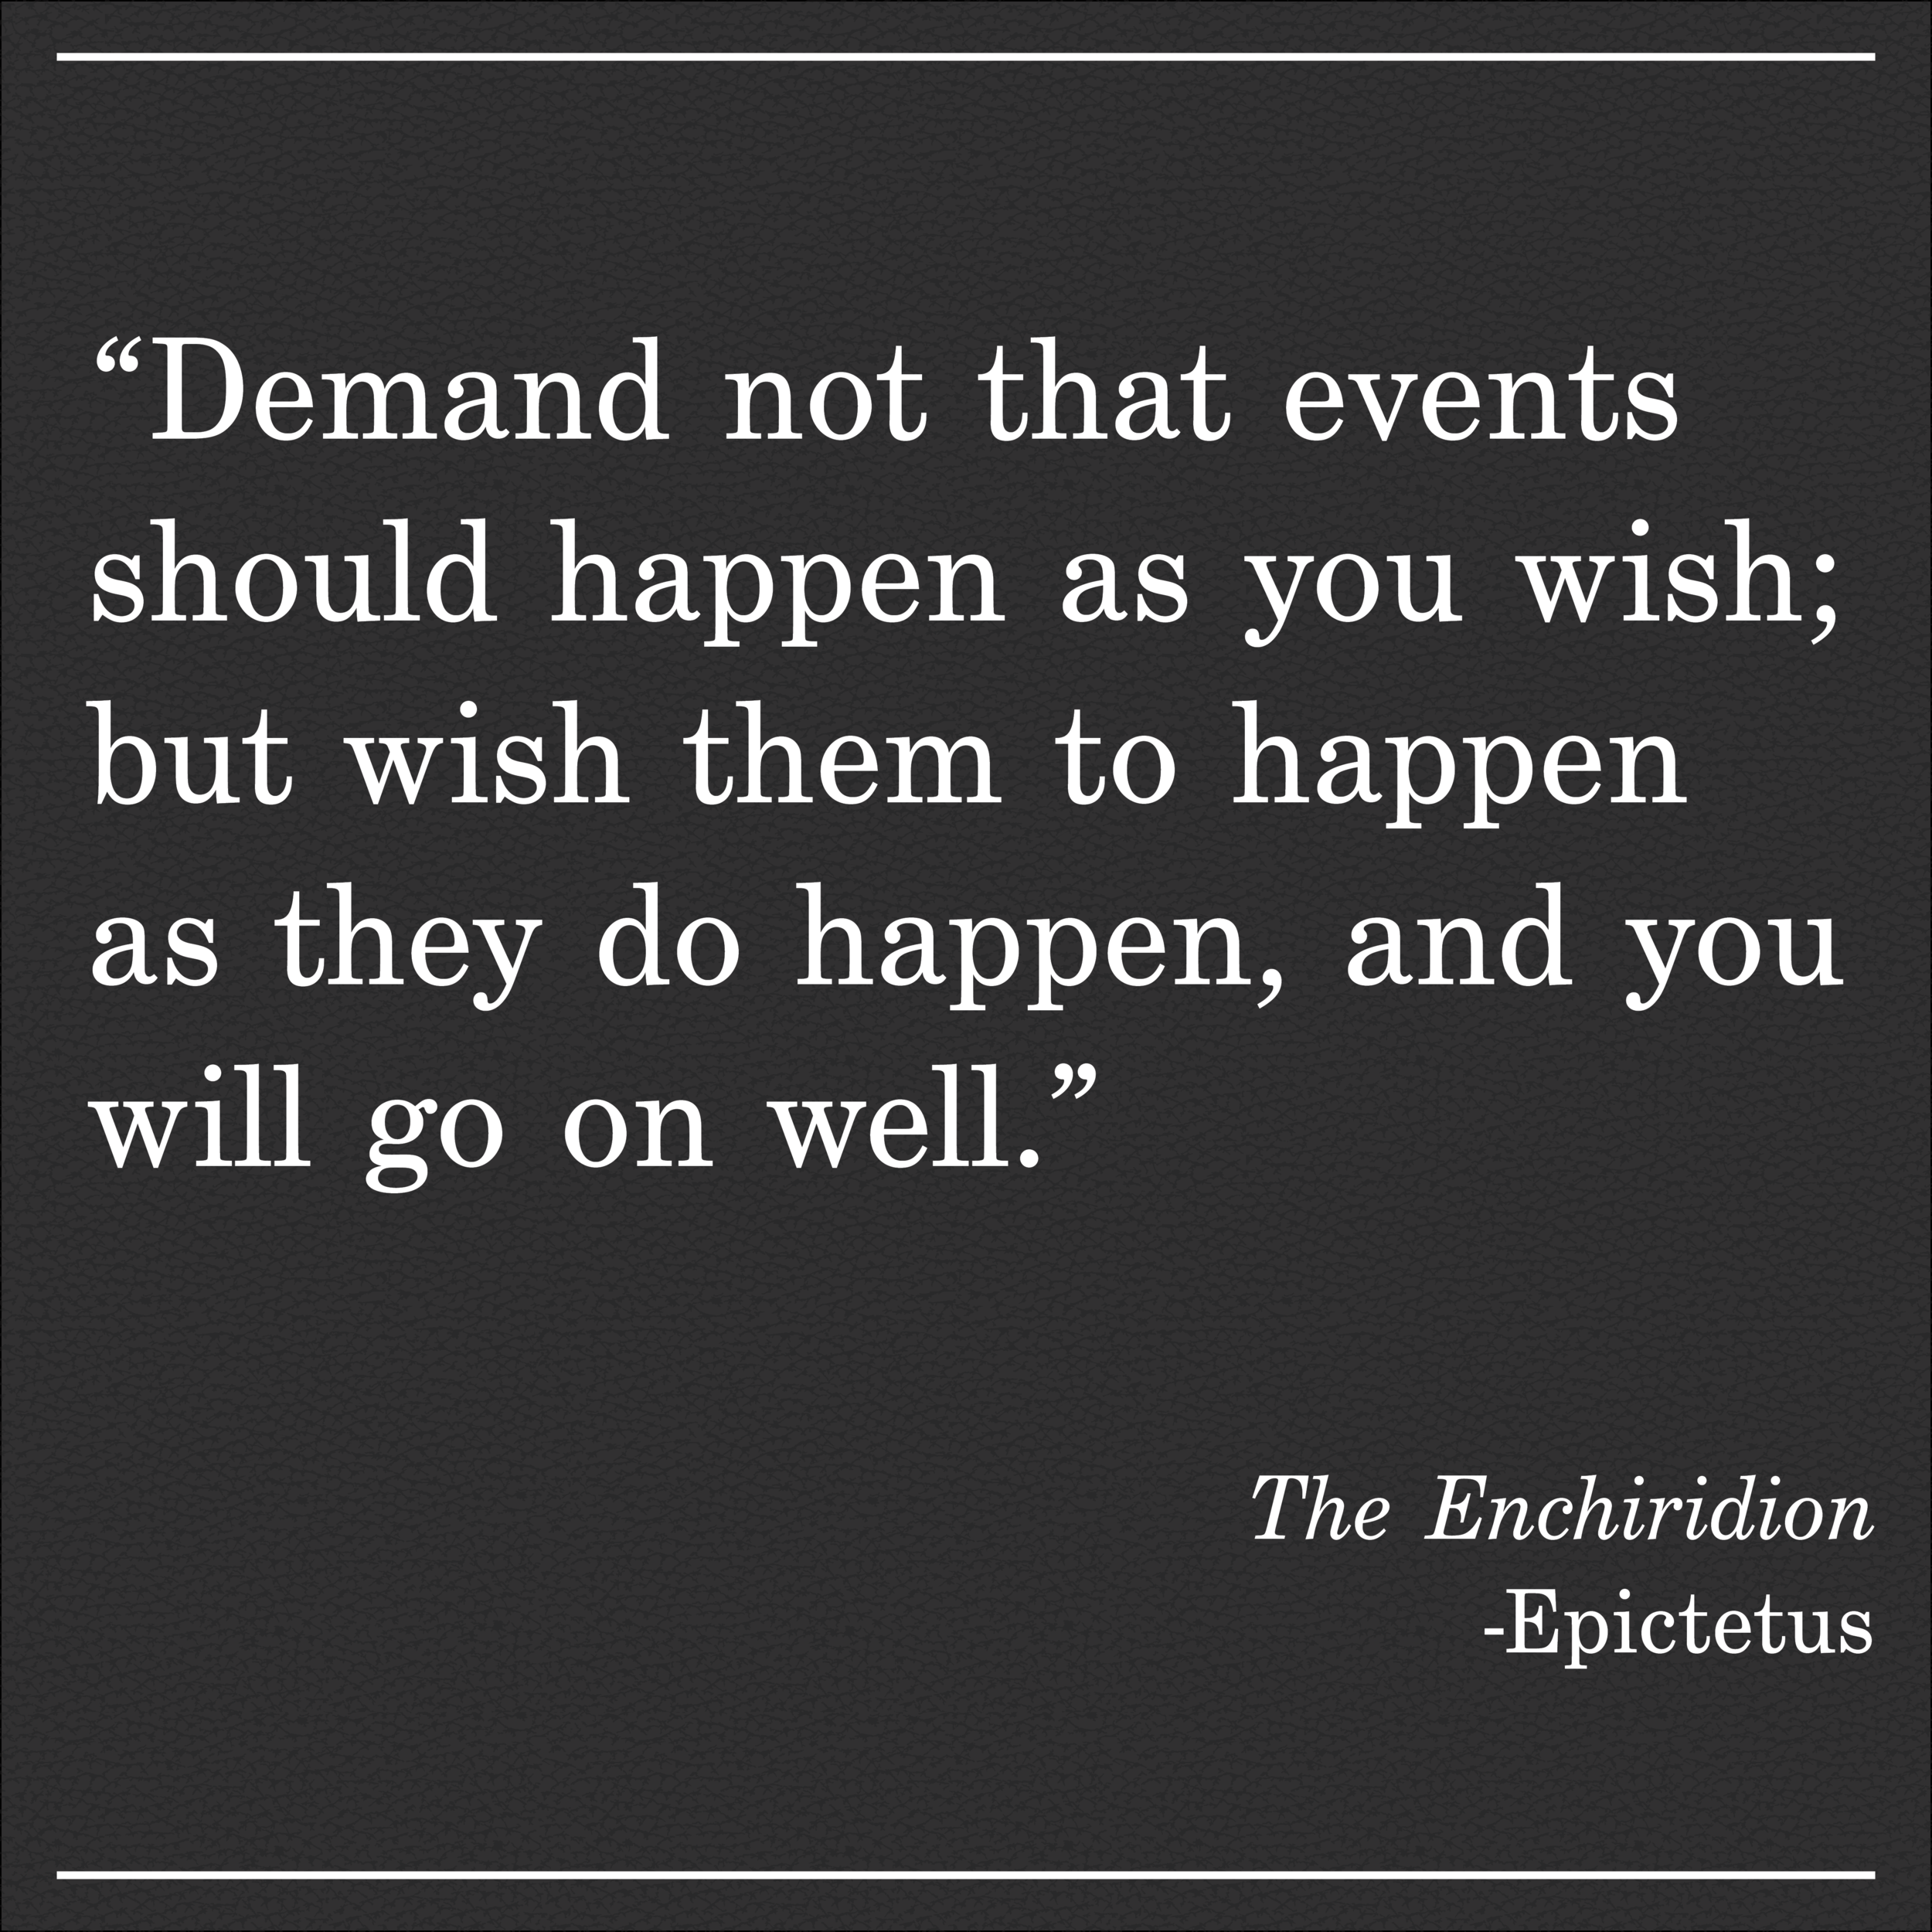 Daily Quote The Enchiridion by Epictetus